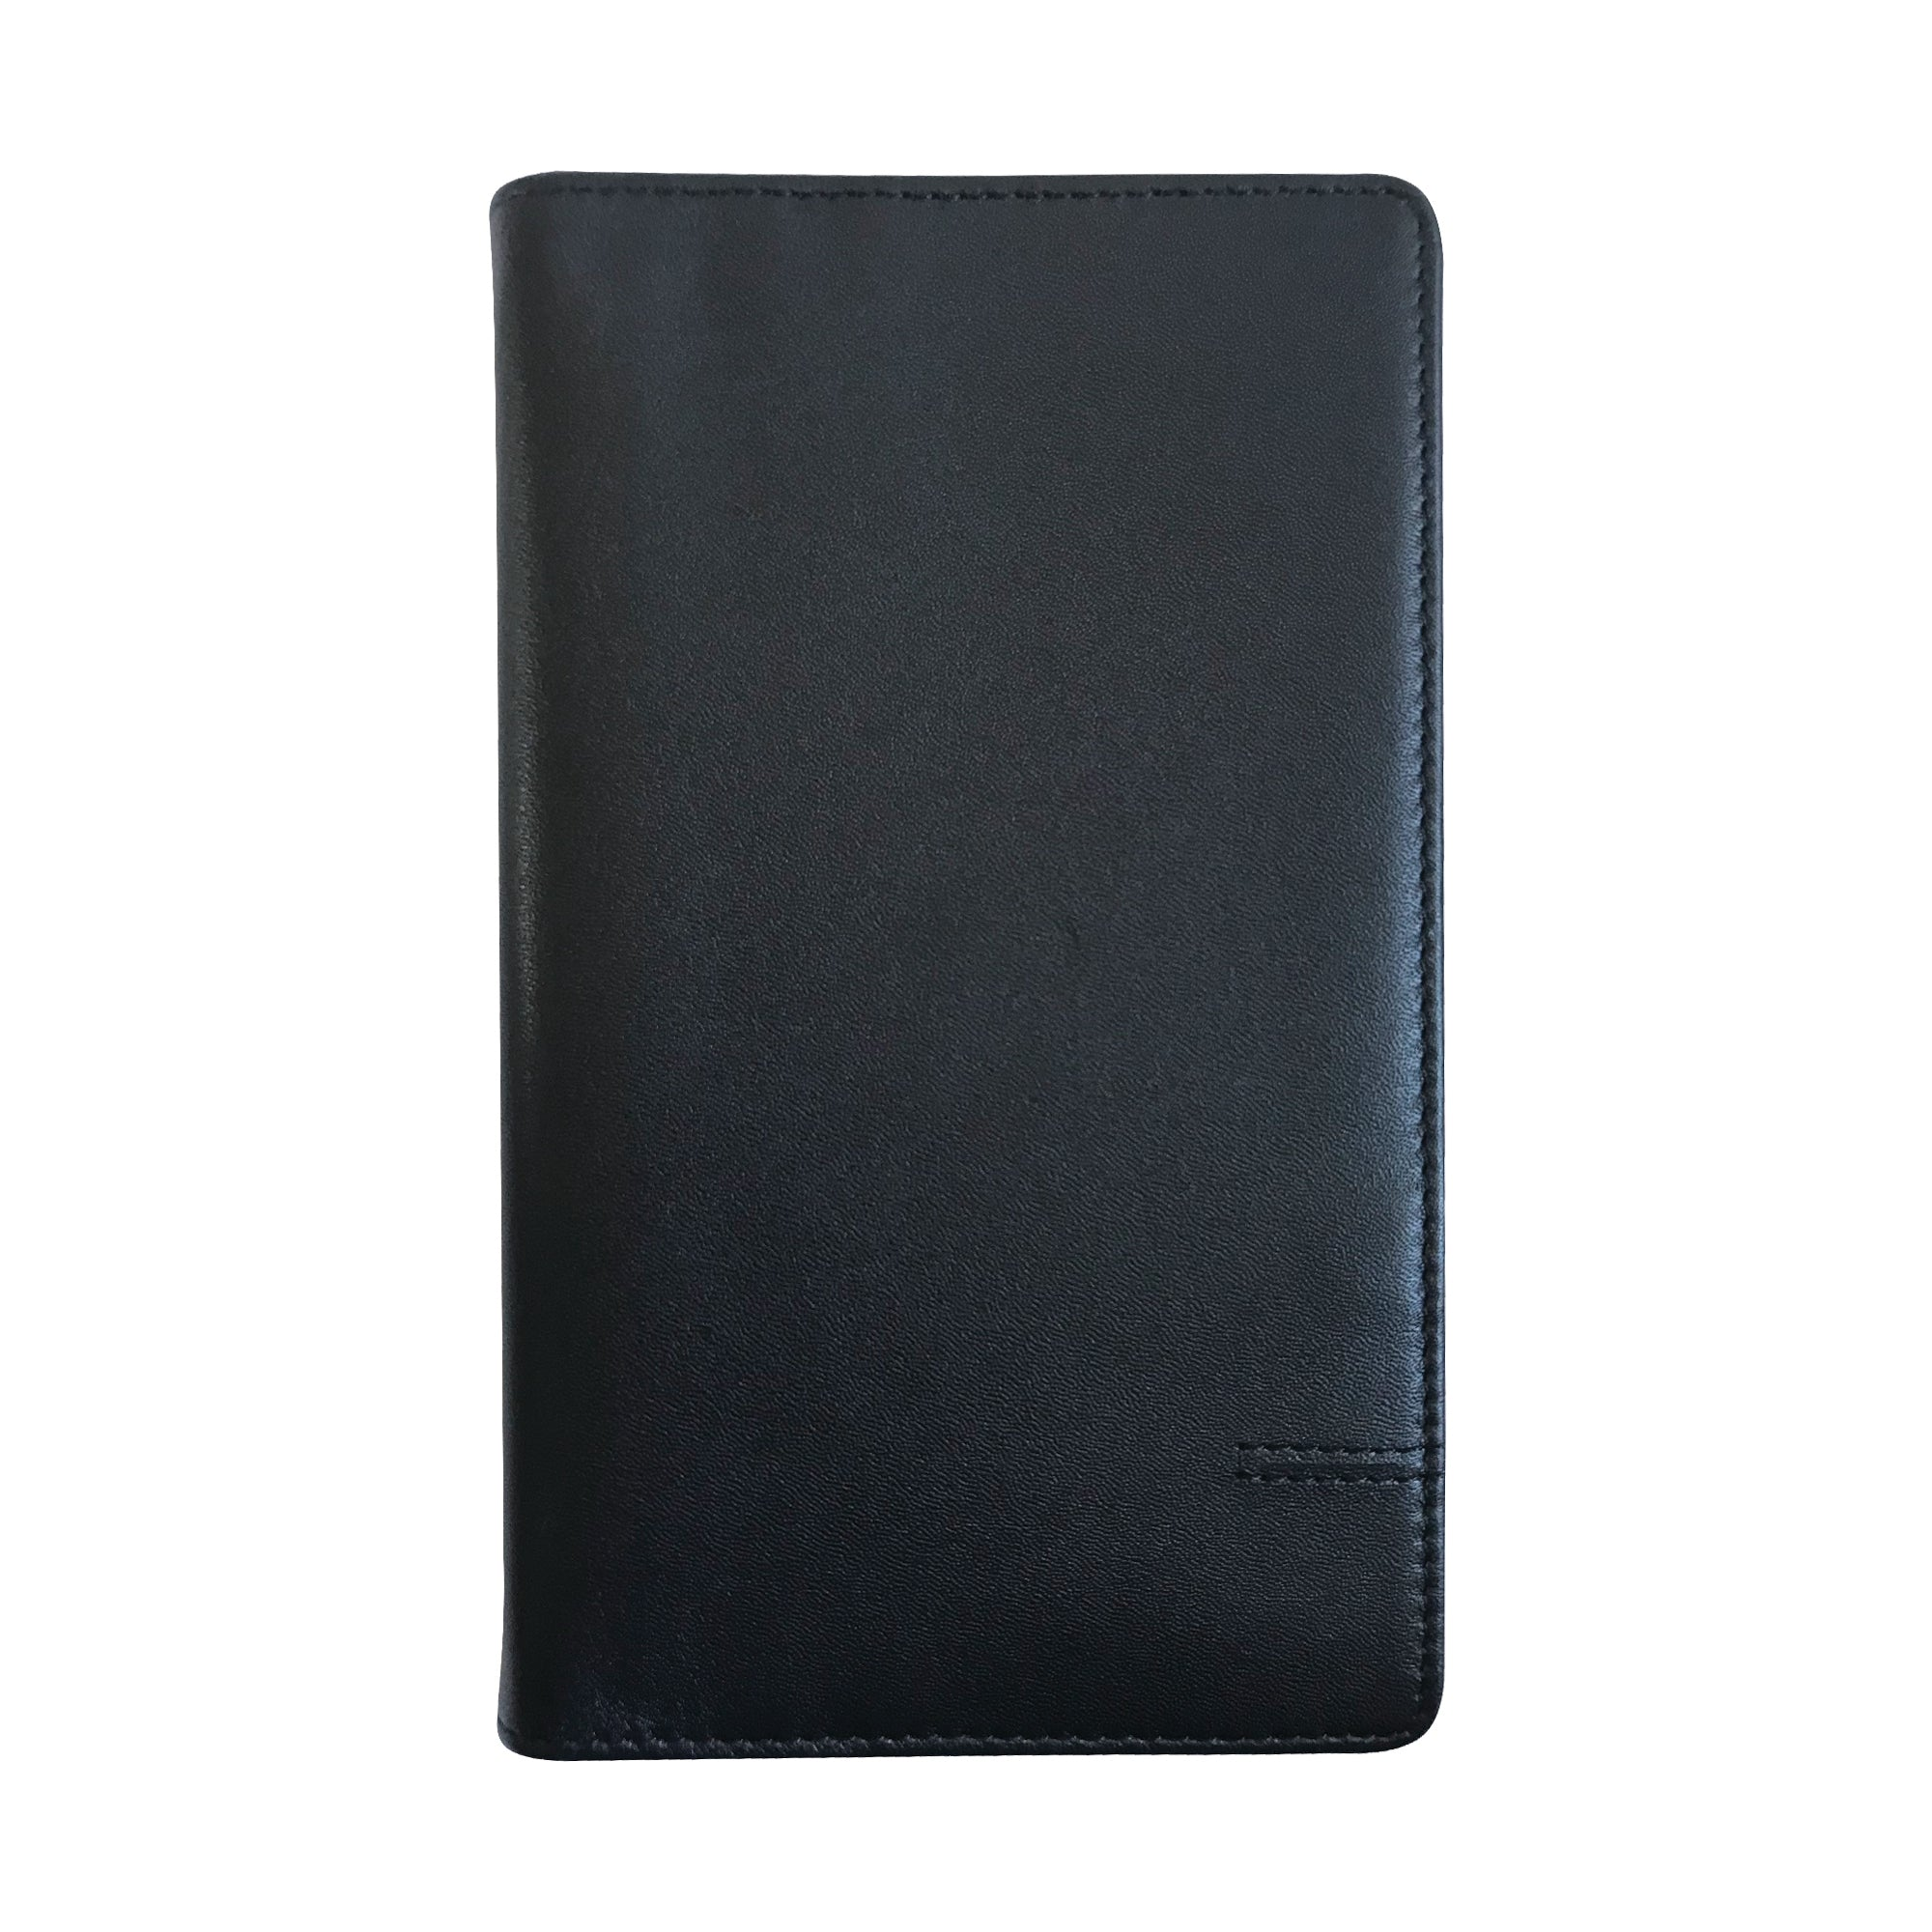 Dayplanner Personal Sized - Leather